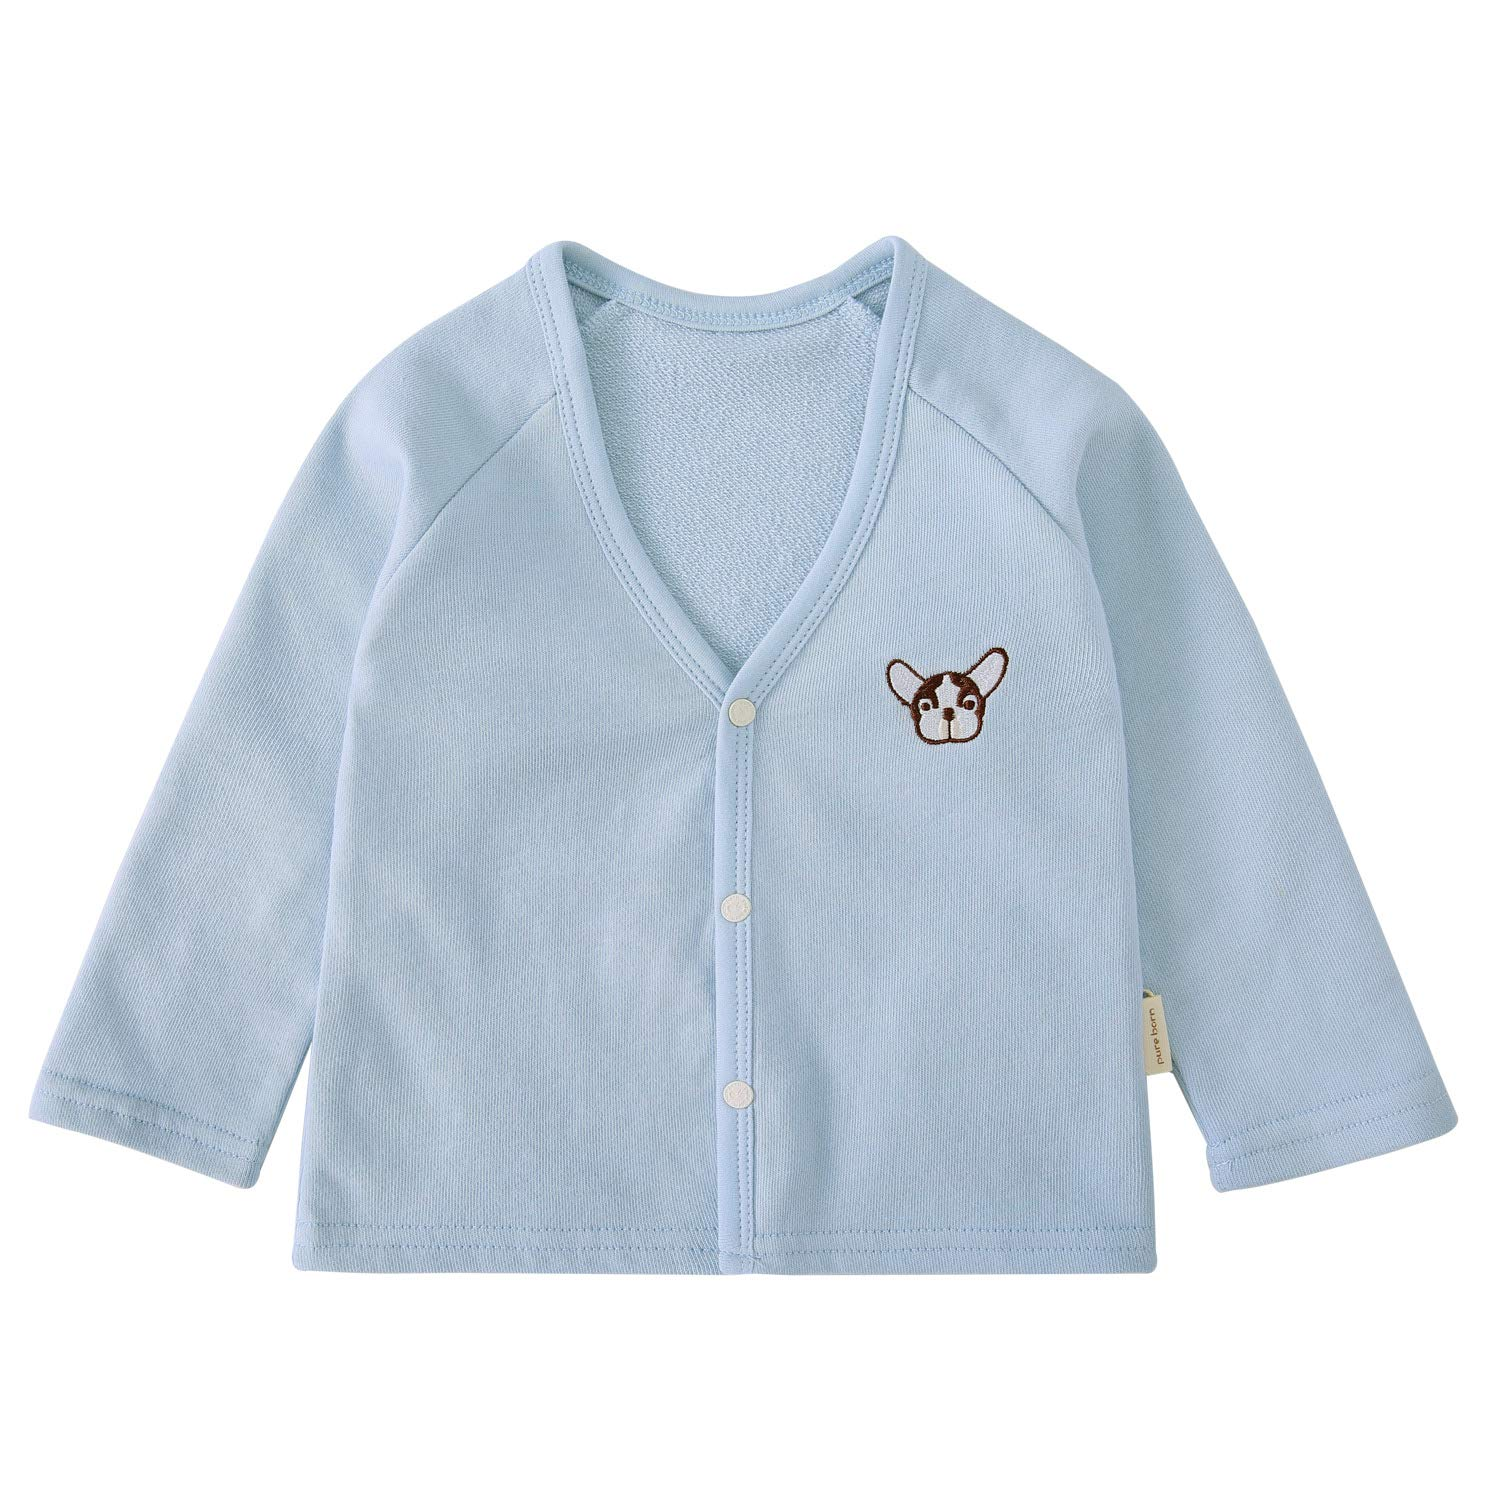 pureborn Baby Boys Girls Cardigan Top Cotton Sweater Shirt Spring Jacket 1-3 Years